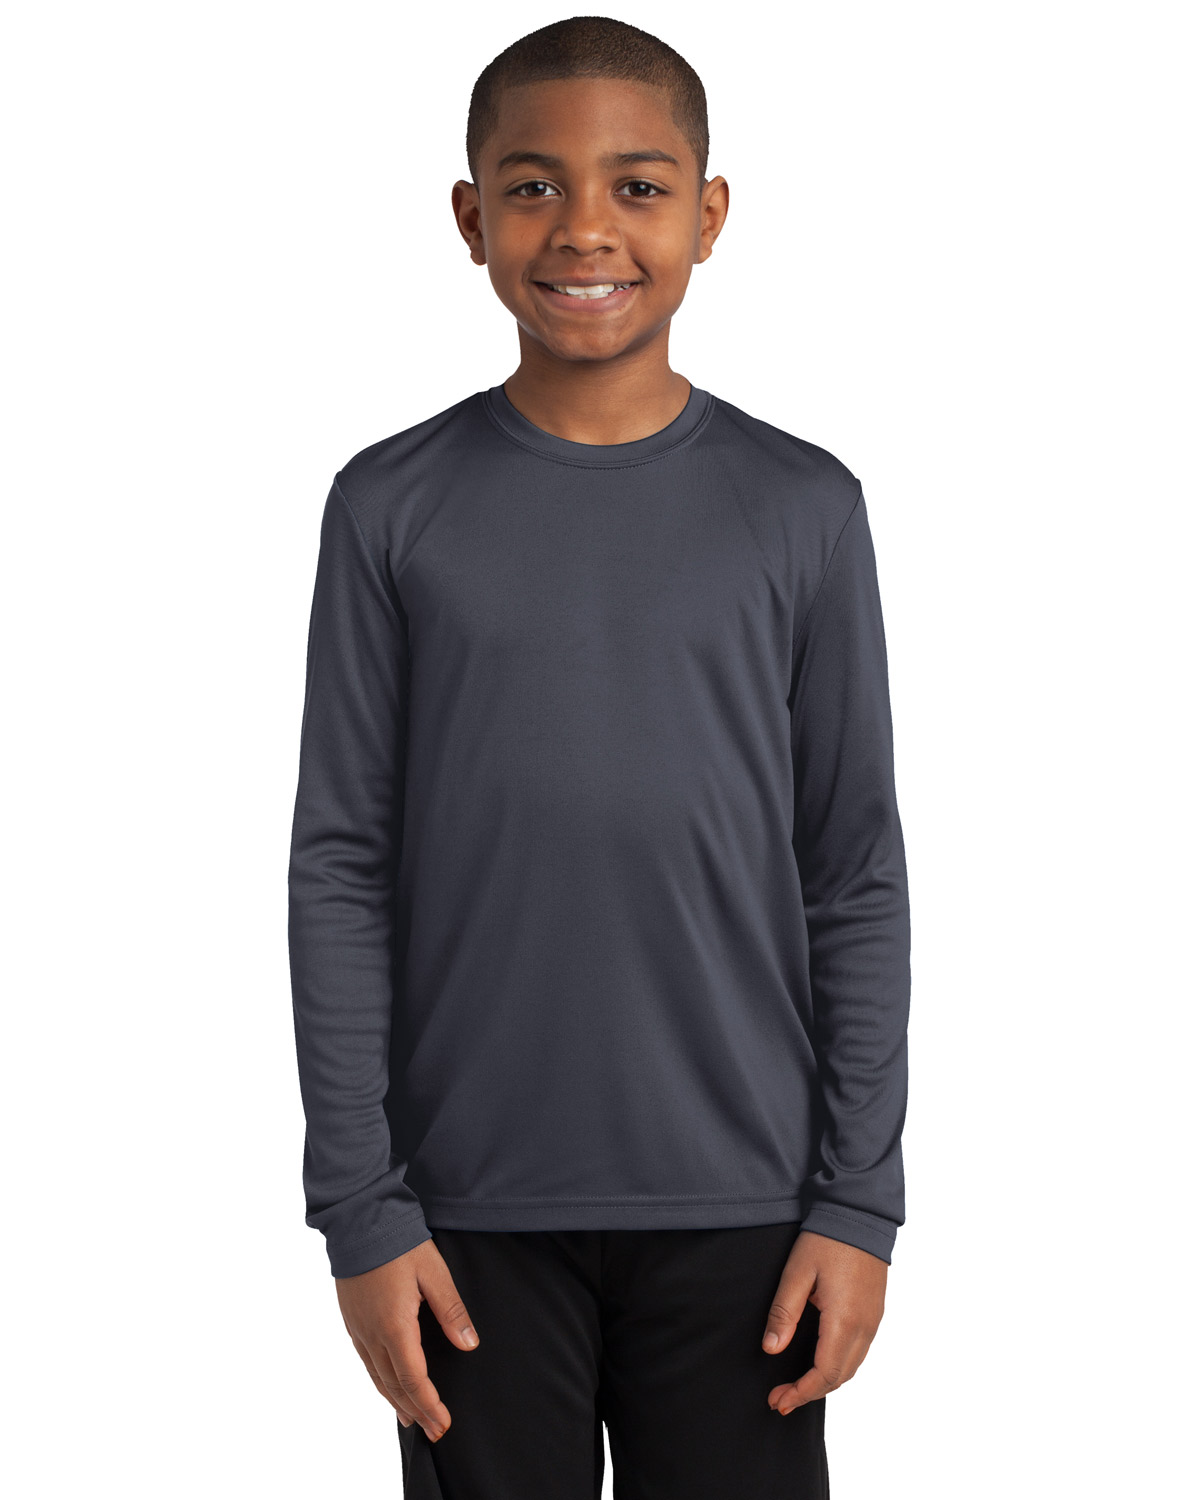 Sport-Tek YST350LS Boys Long Sleeve PosiCharge Competitor™ Tee at GotApparel